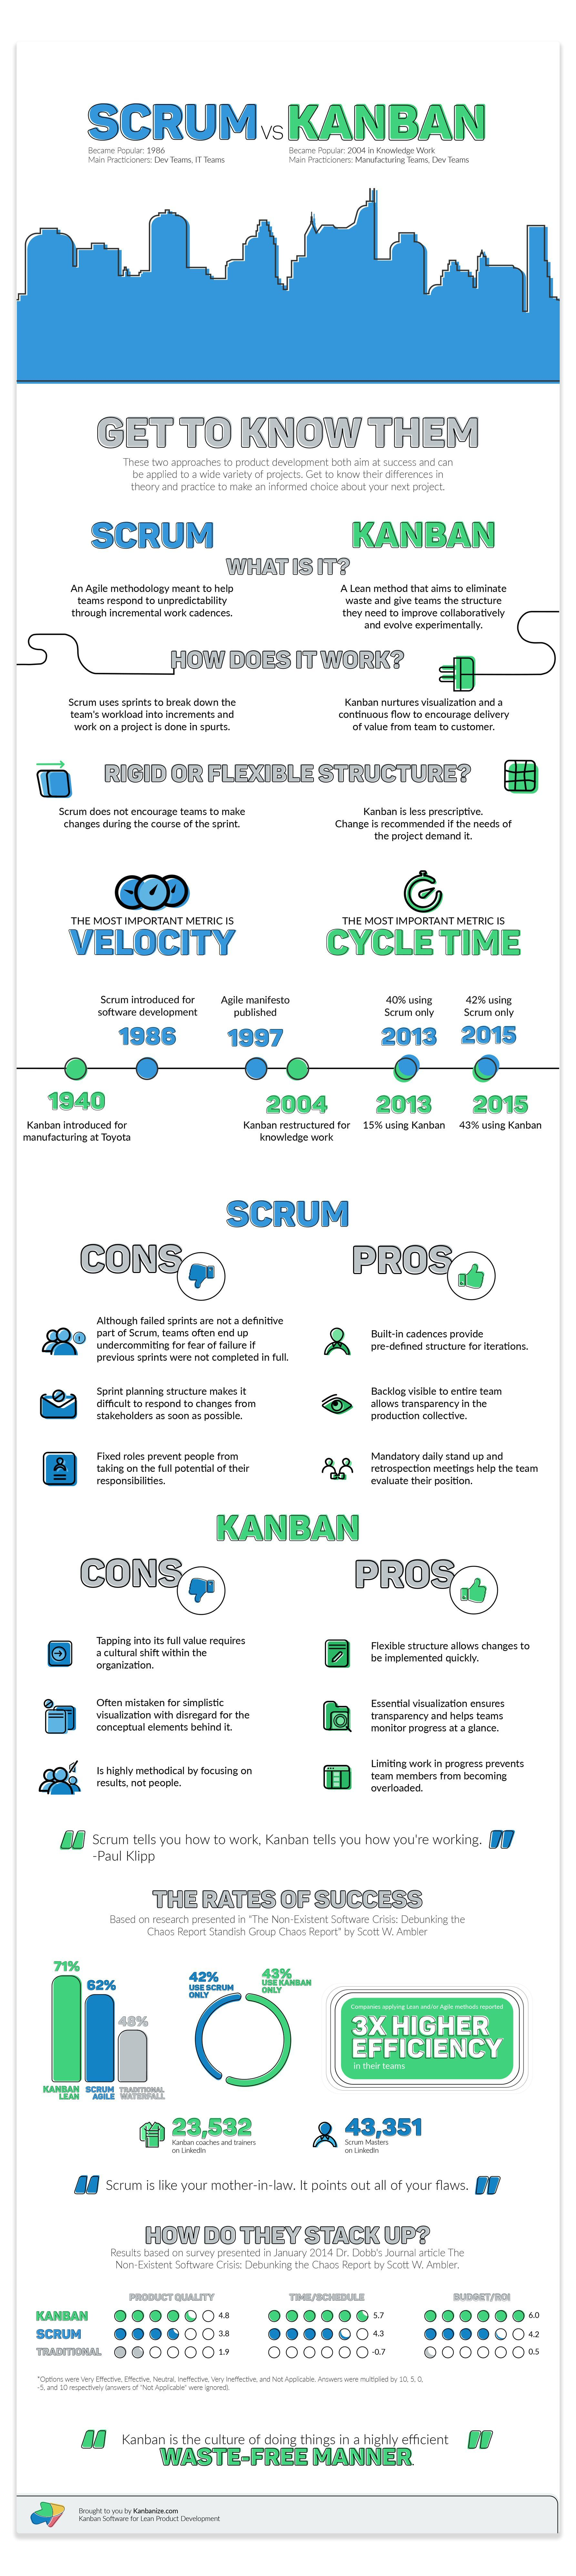 Read More About Kanban Personal Kanban Kanban For Project Management On Tipsographic Com Kanban Project Management Tools Agile Project Management